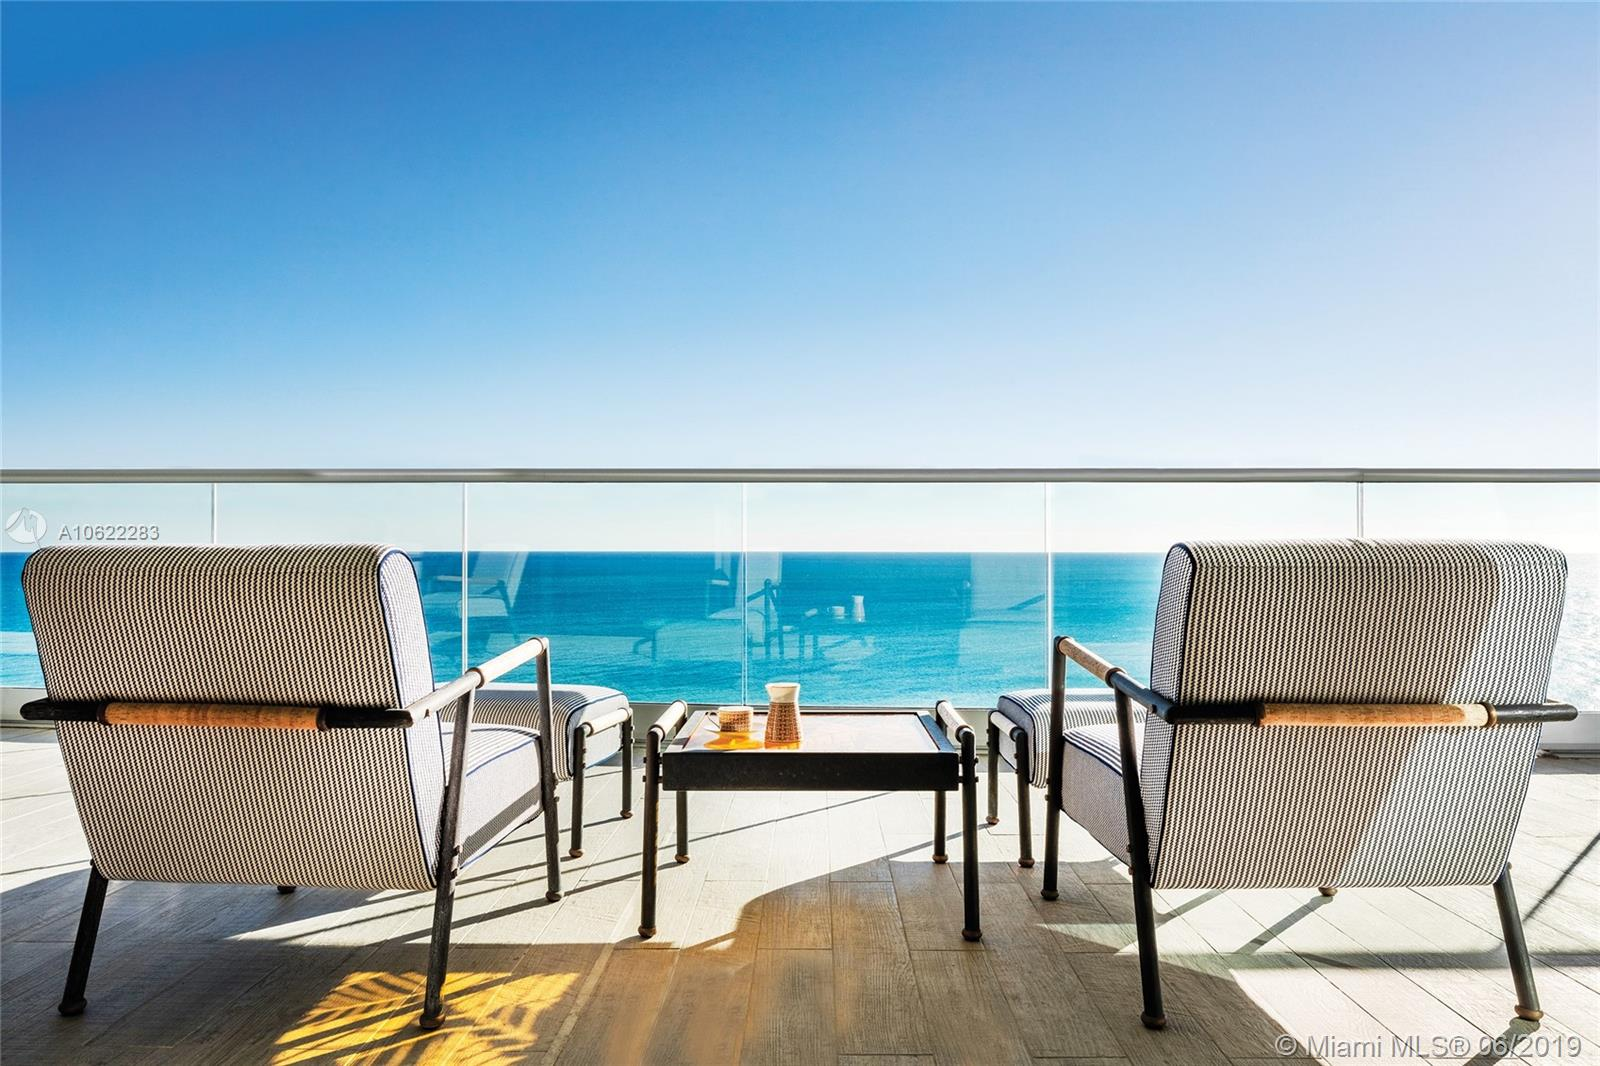 9349 Collins Ave, Unit #1106 Luxury Real Estate